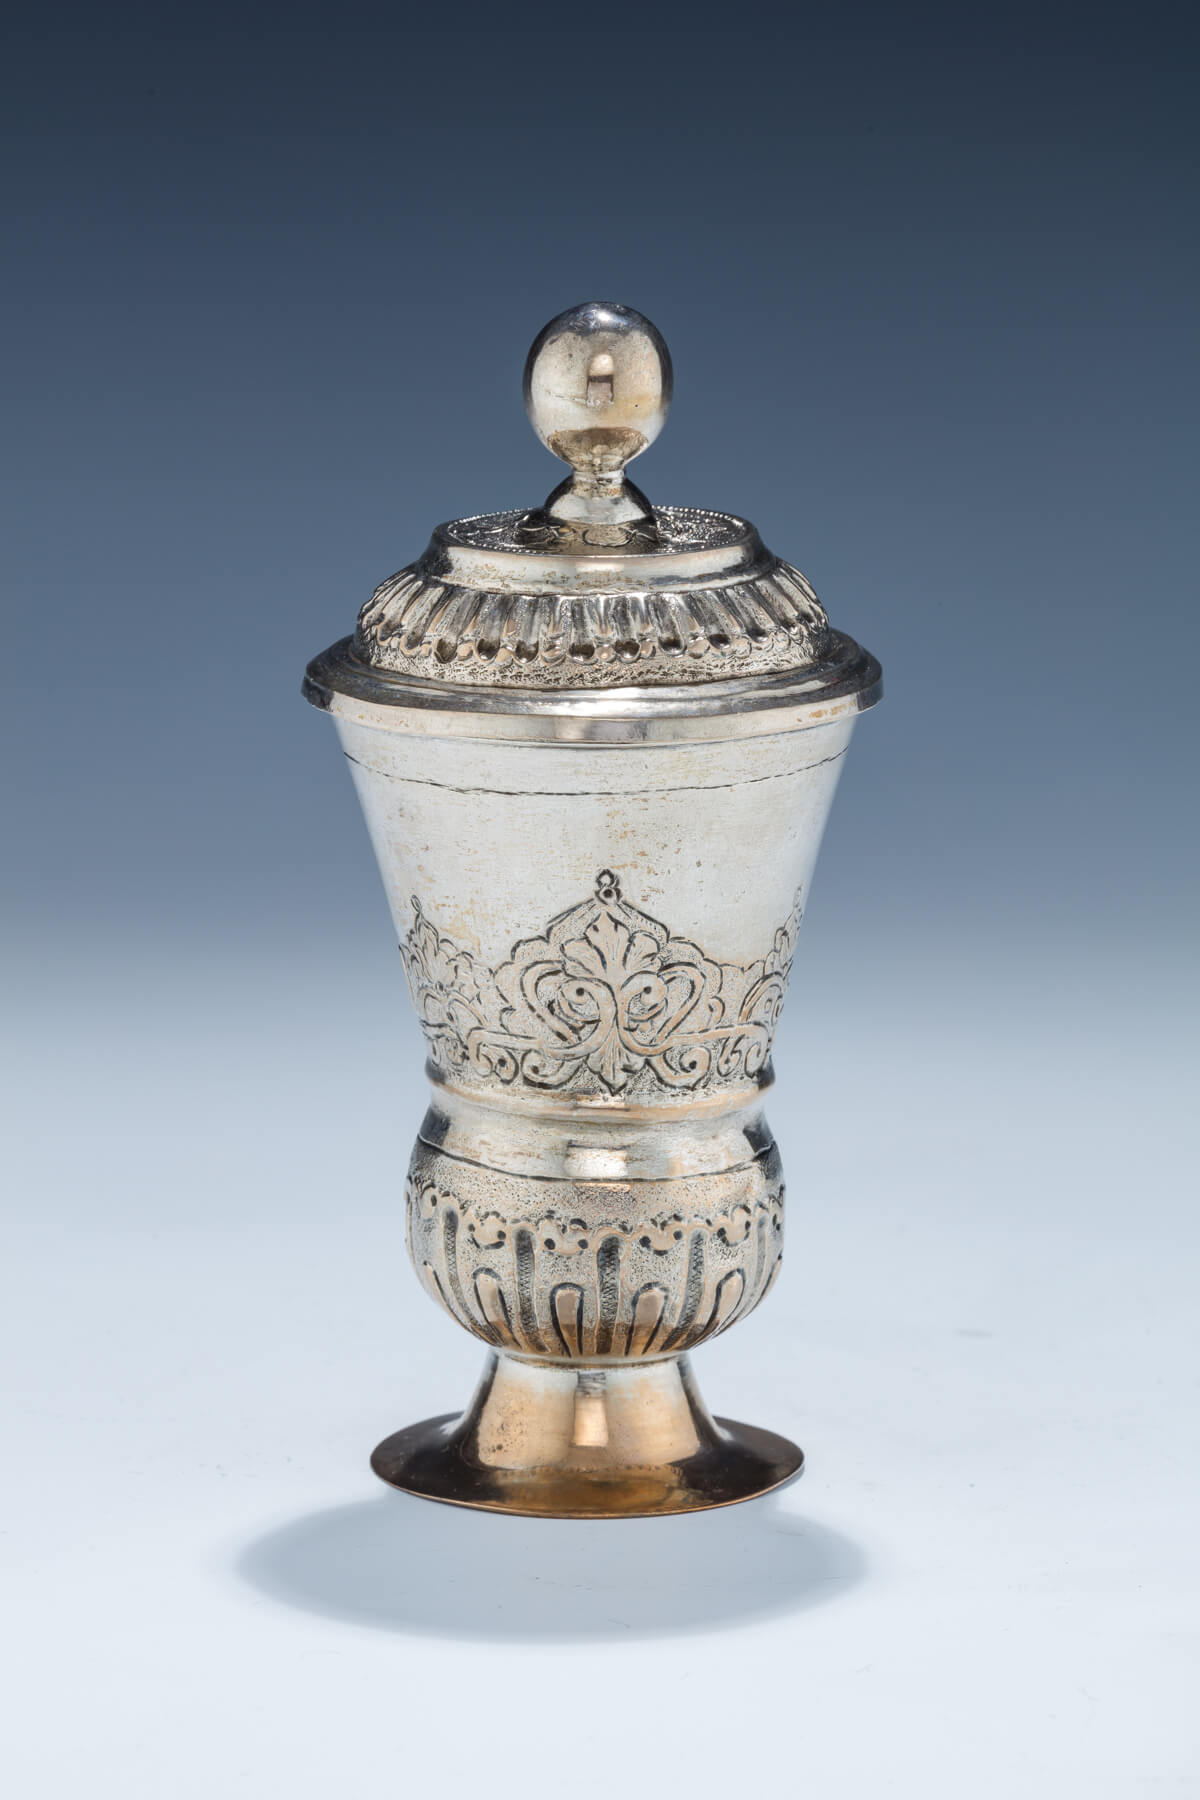 61. An Early Silver Covered Kiddush Beaker